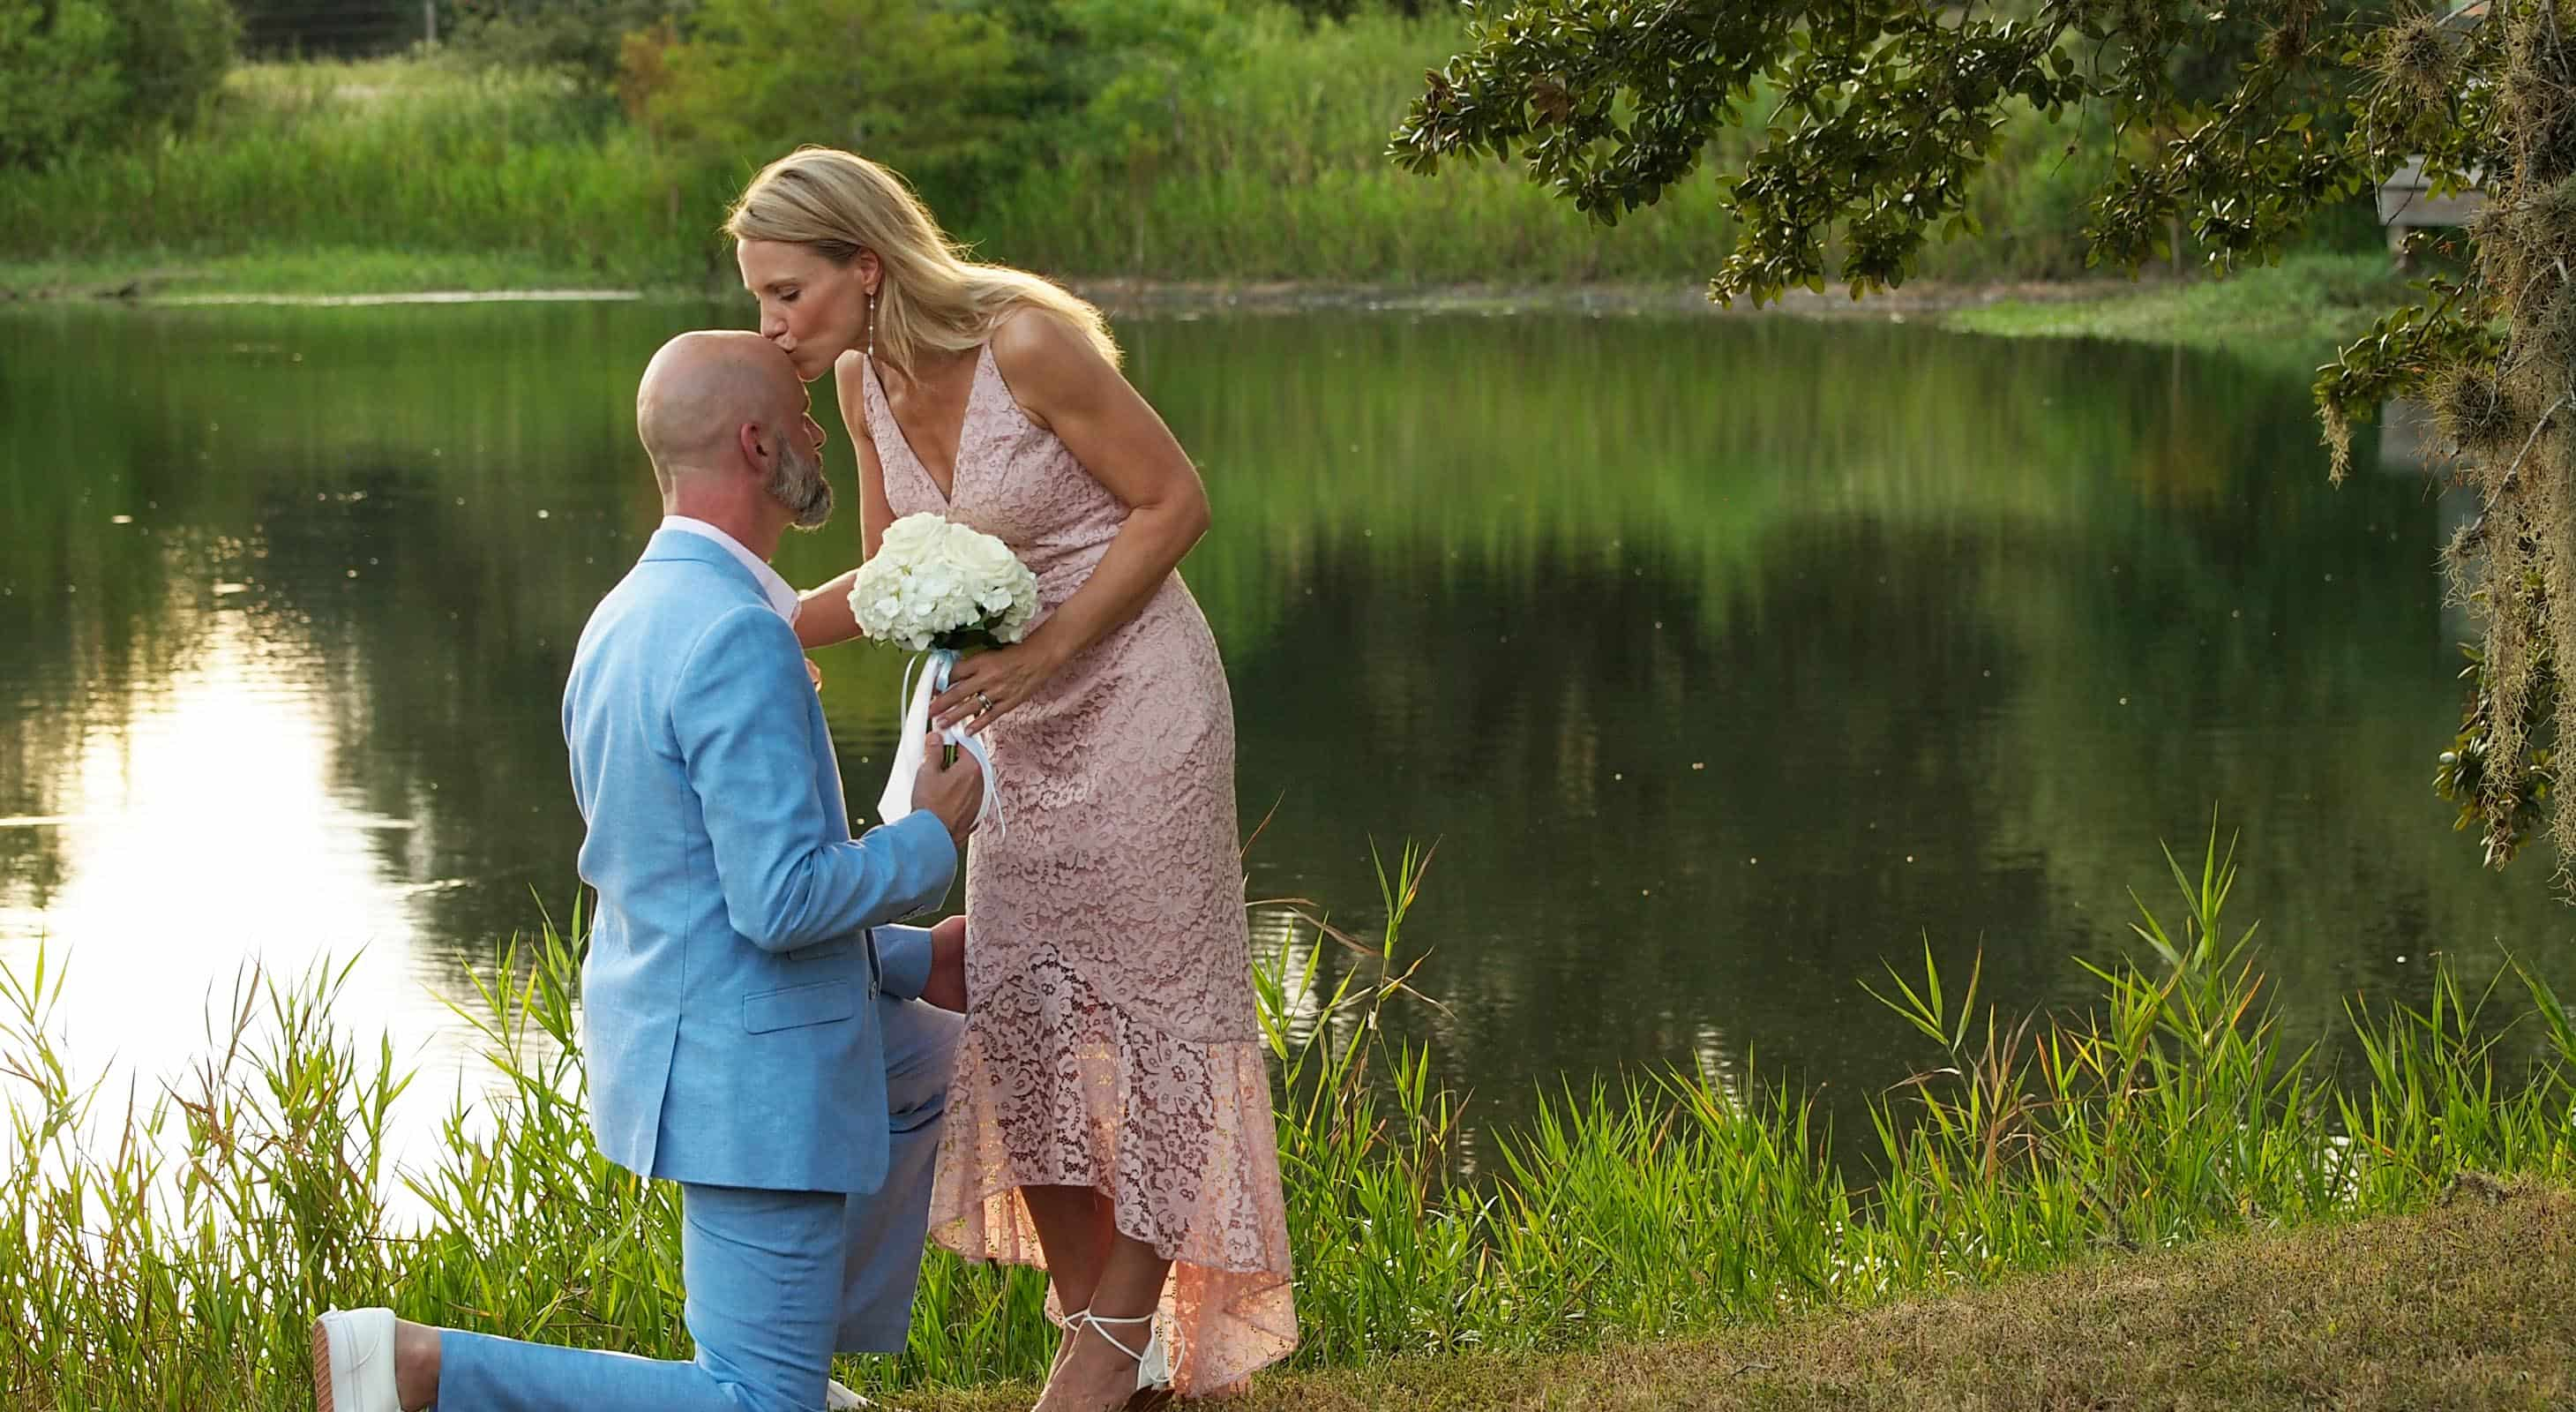 Man on one knee in front of his wife in front of a lake